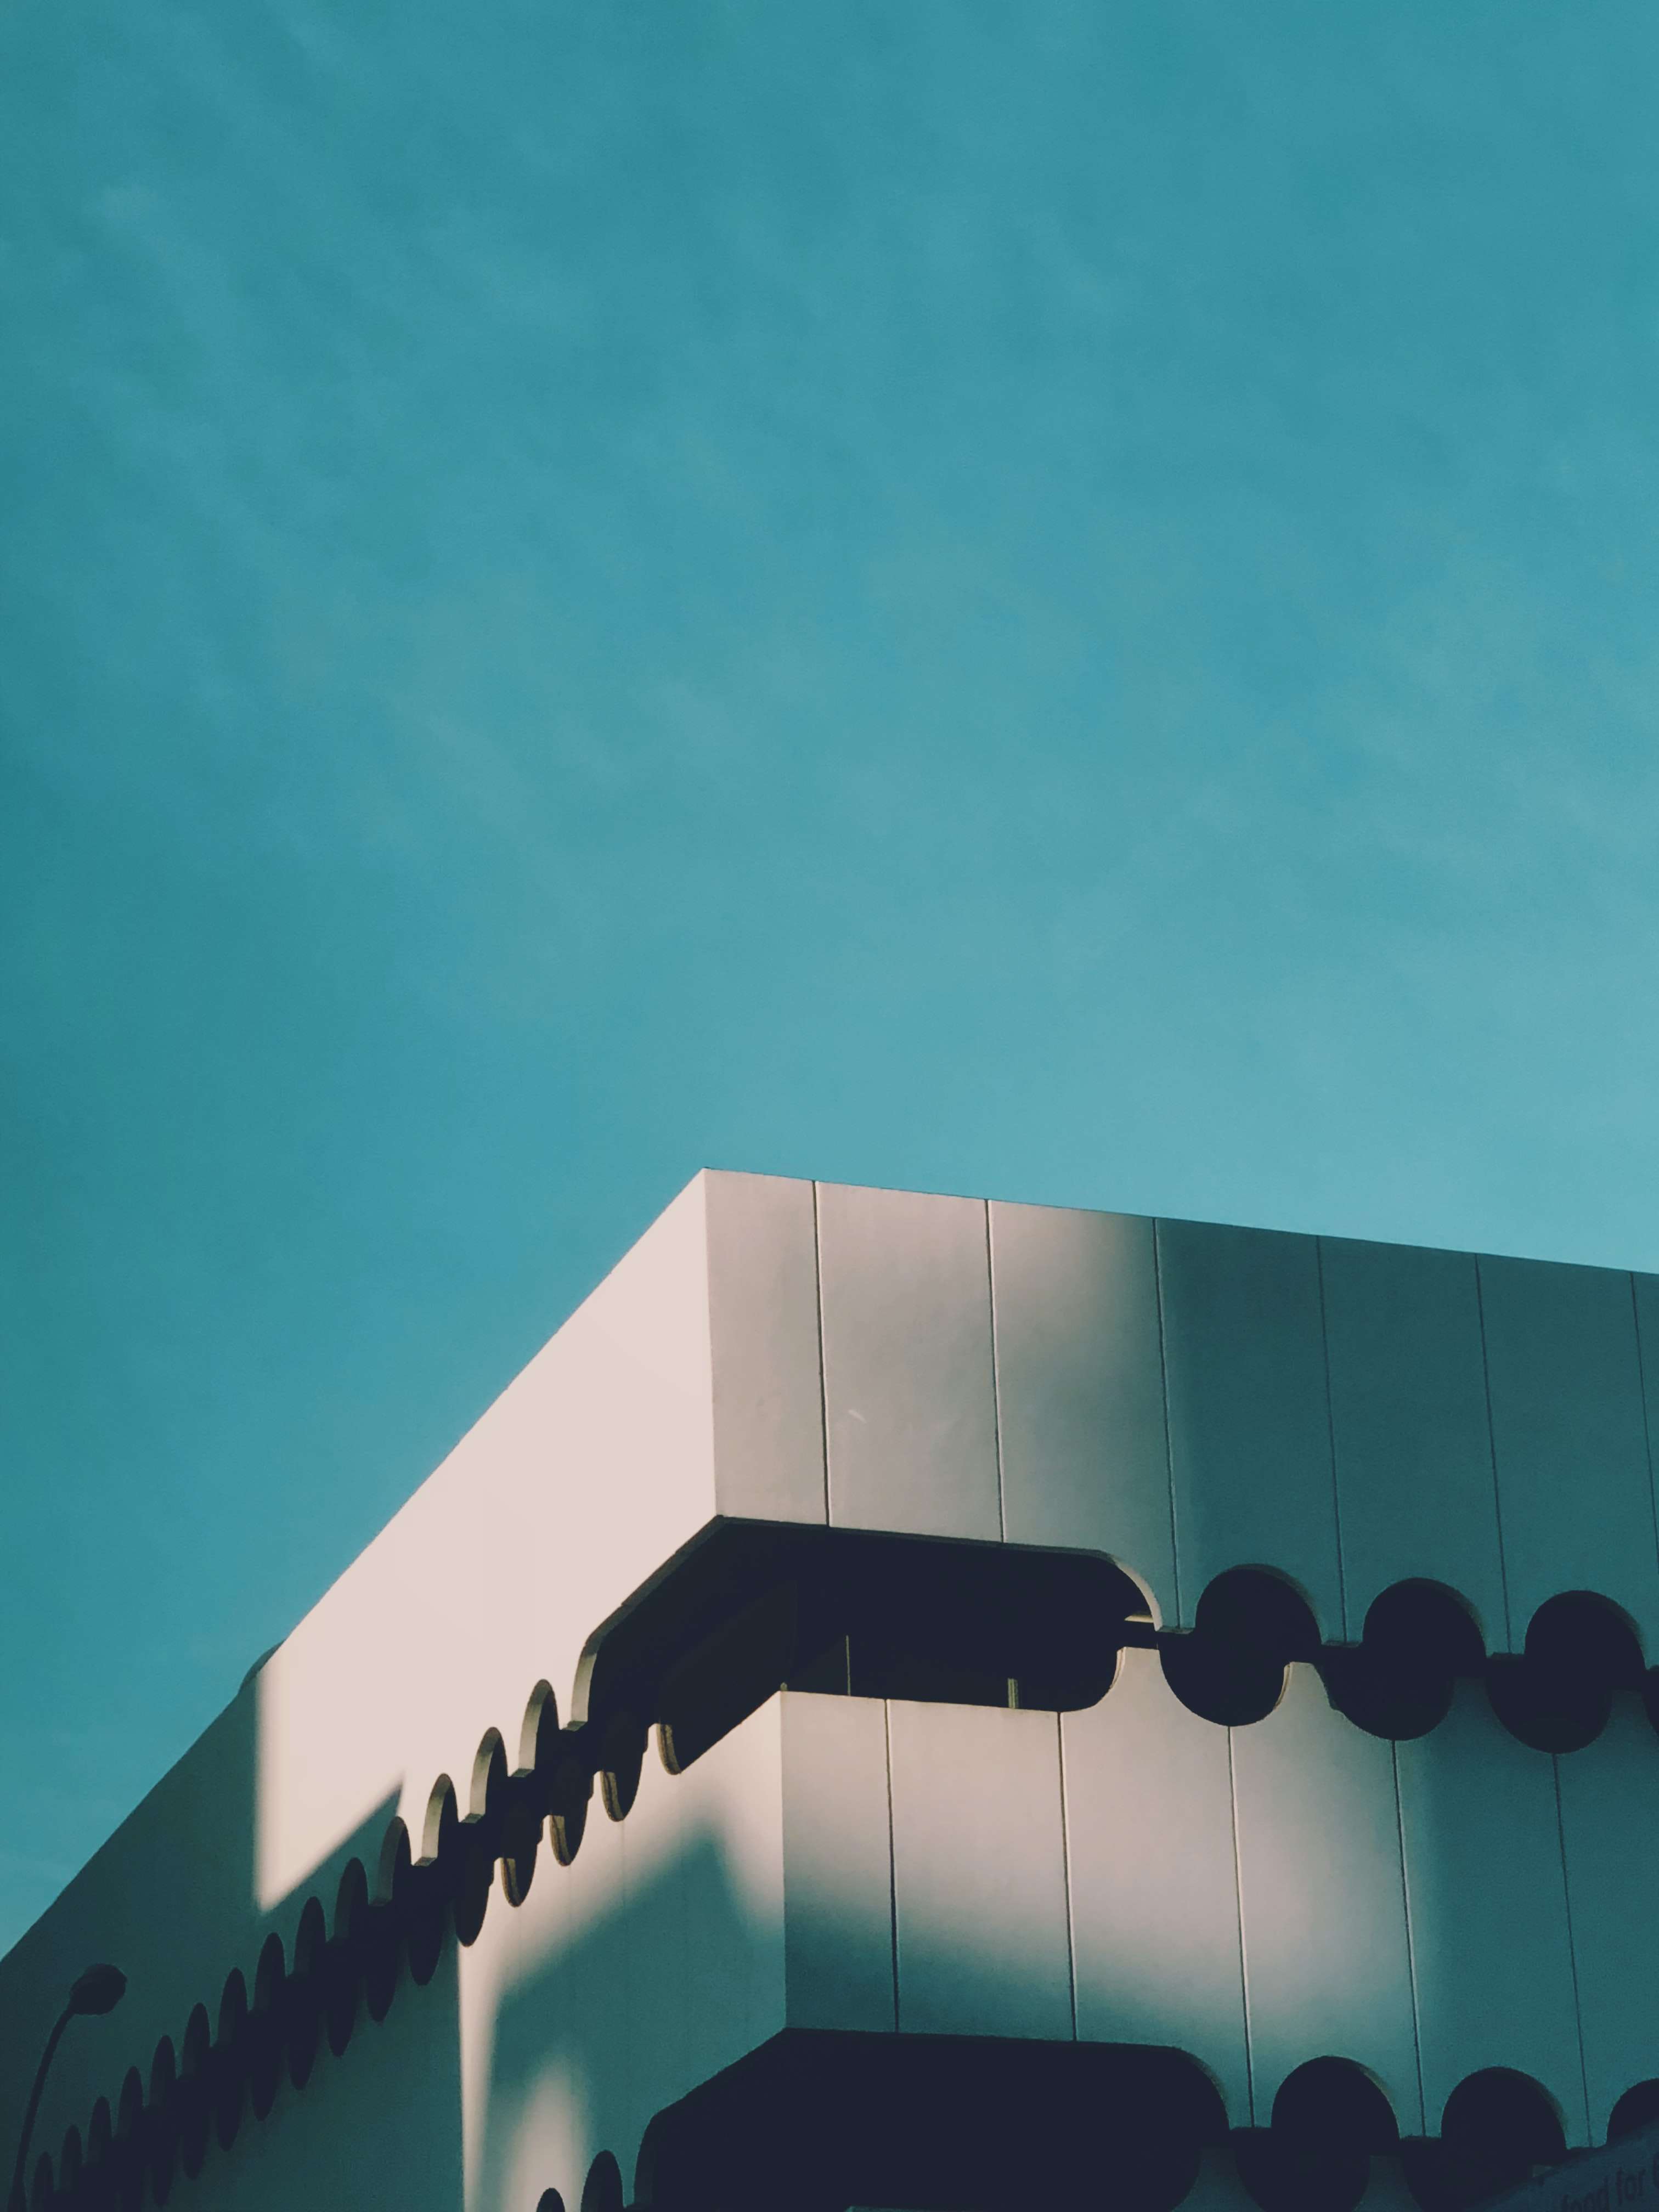 low-angle photography of building under blue sky during daytime